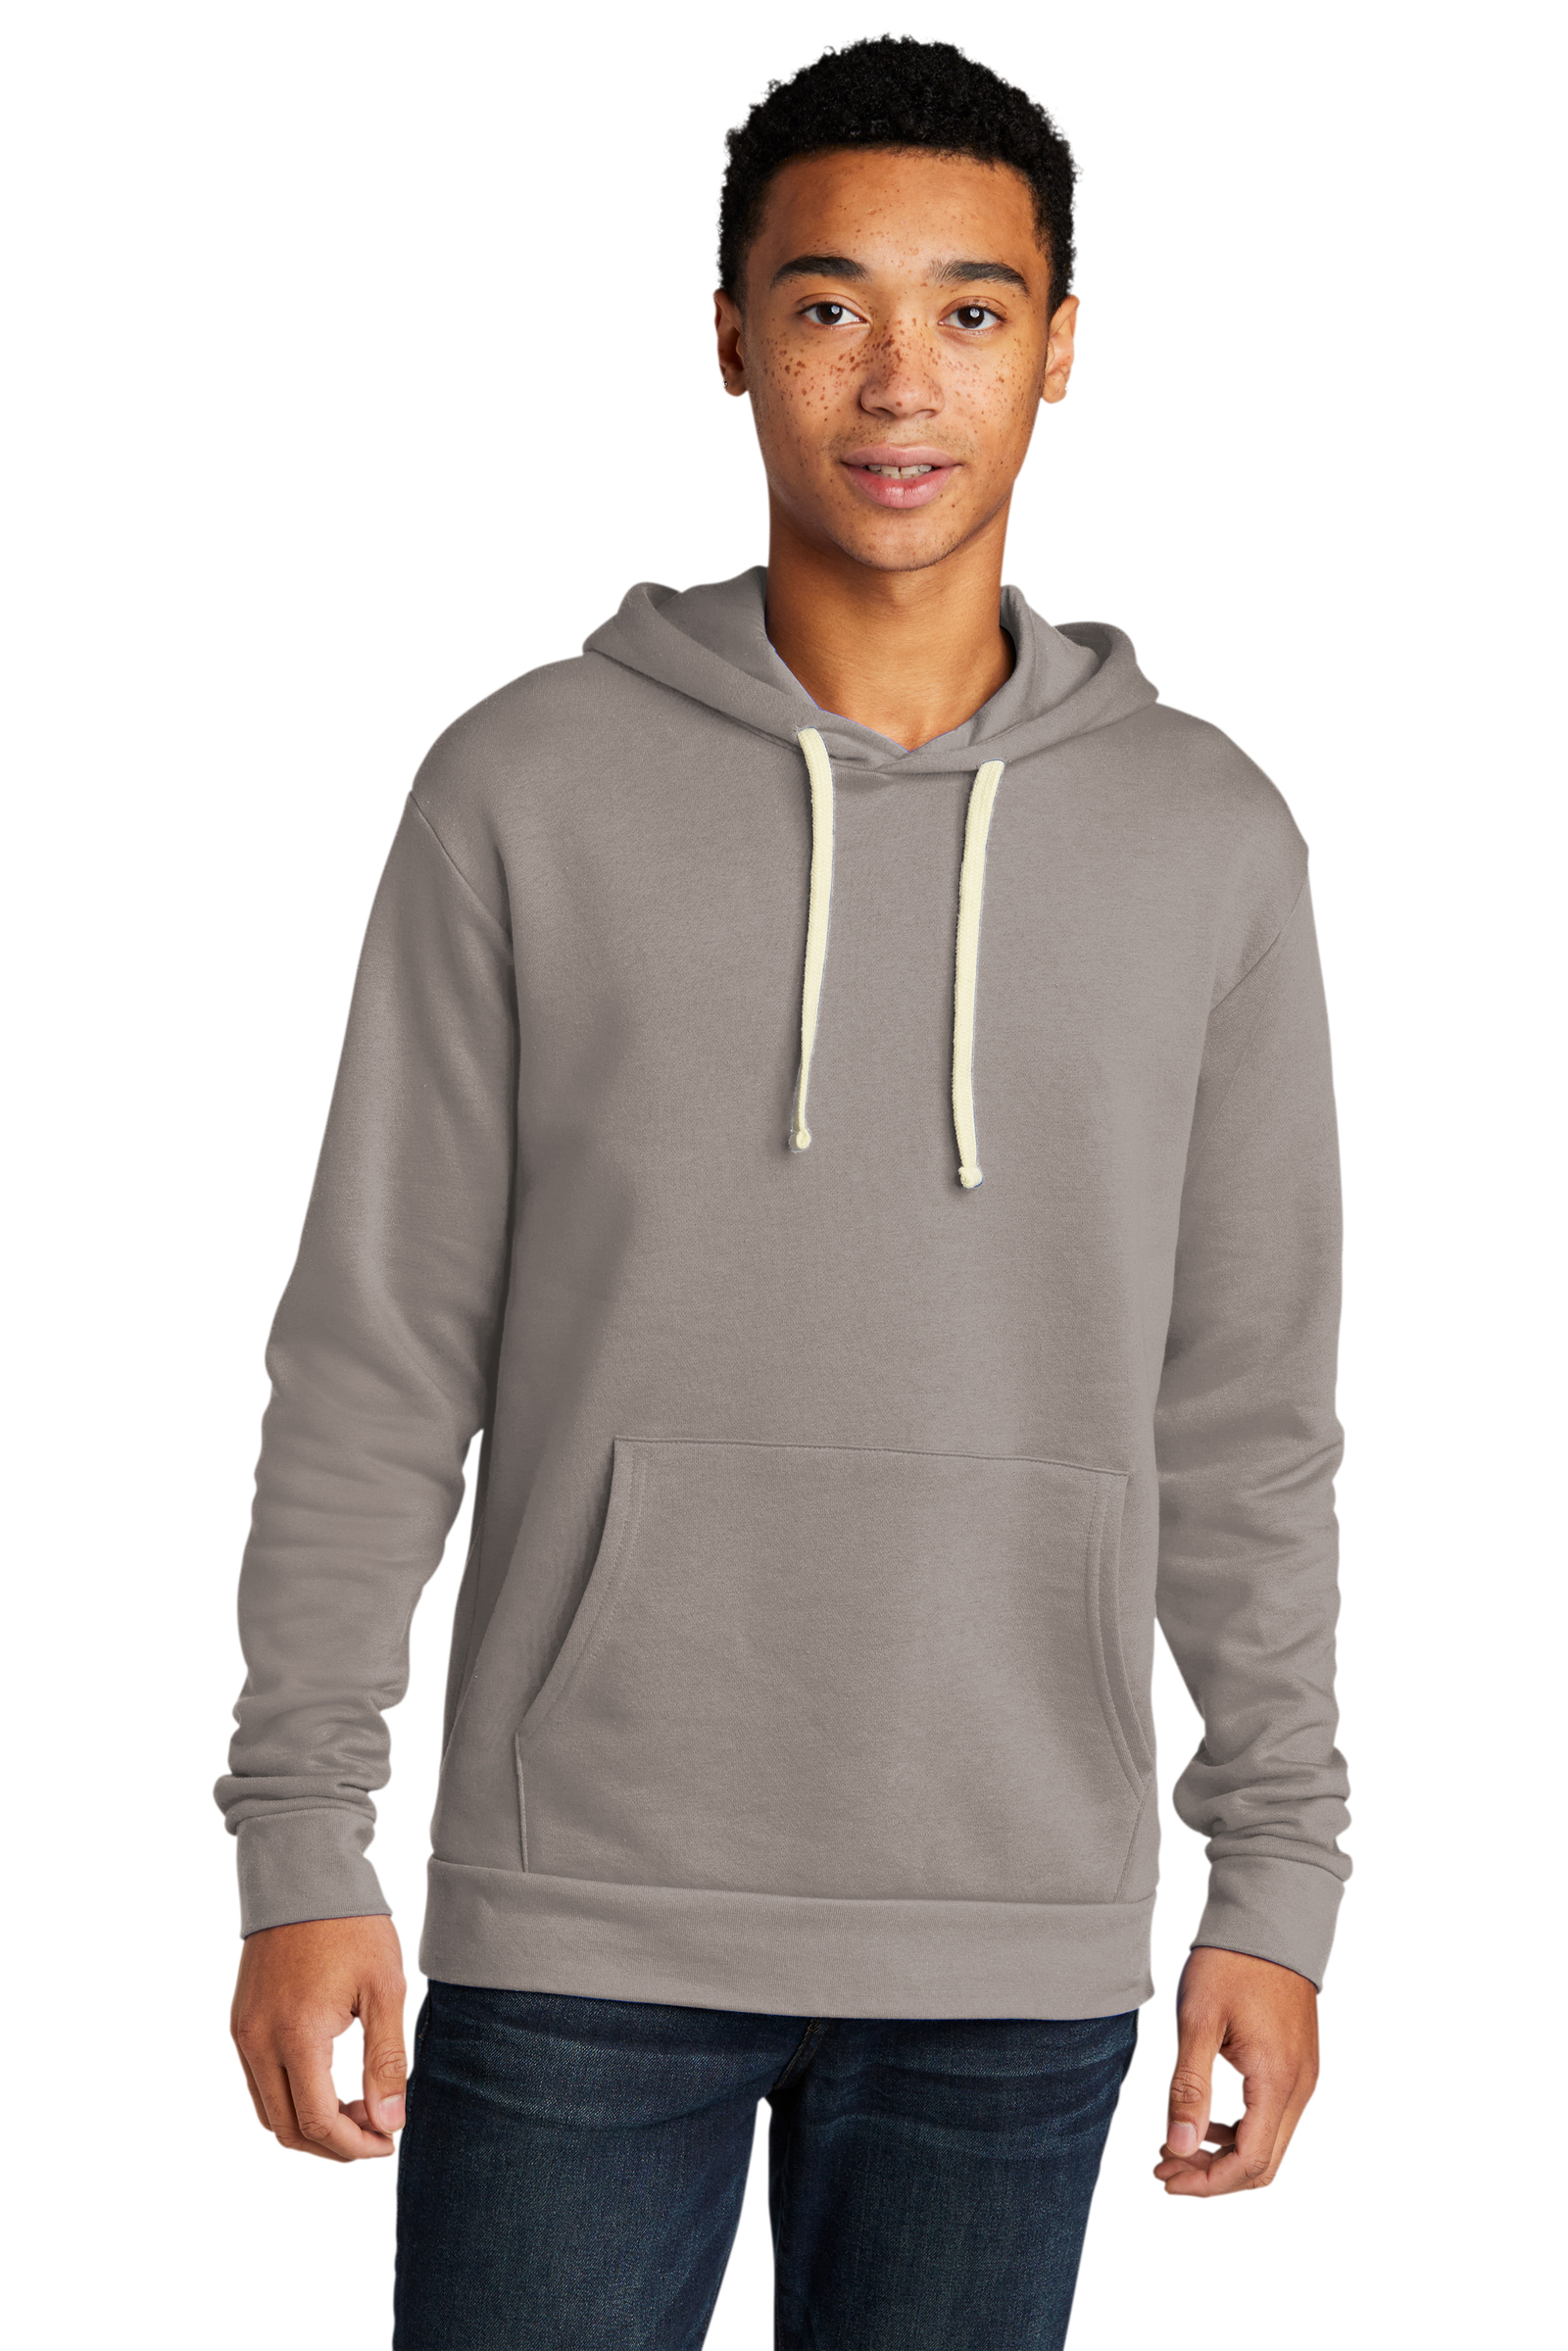 Next Level Embroidered Men's Beach Fleece Pullover Hoodie